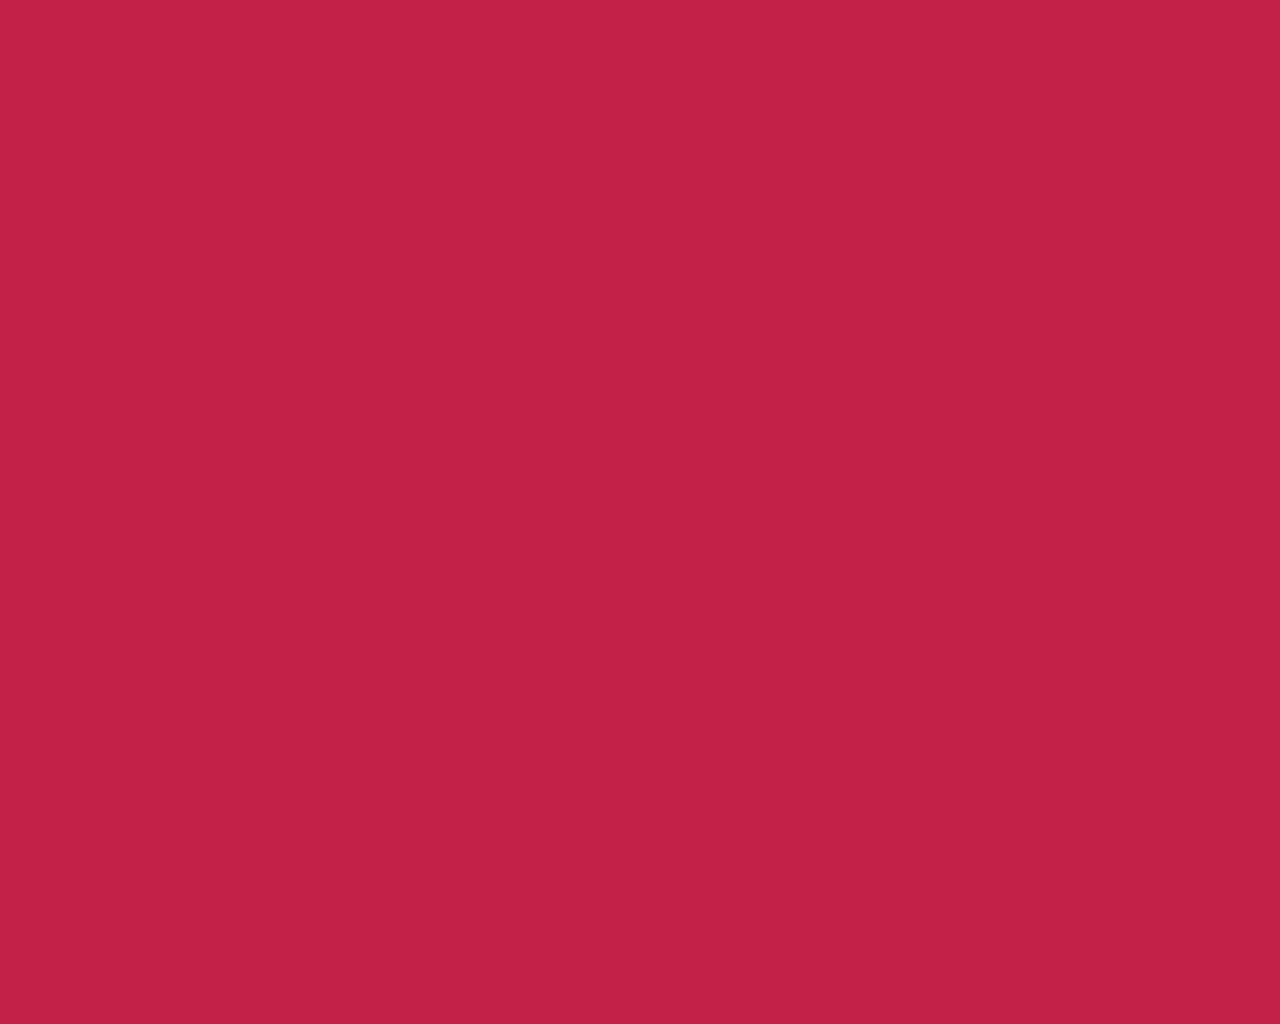 1280x1024 Bright Maroon Solid Color Background